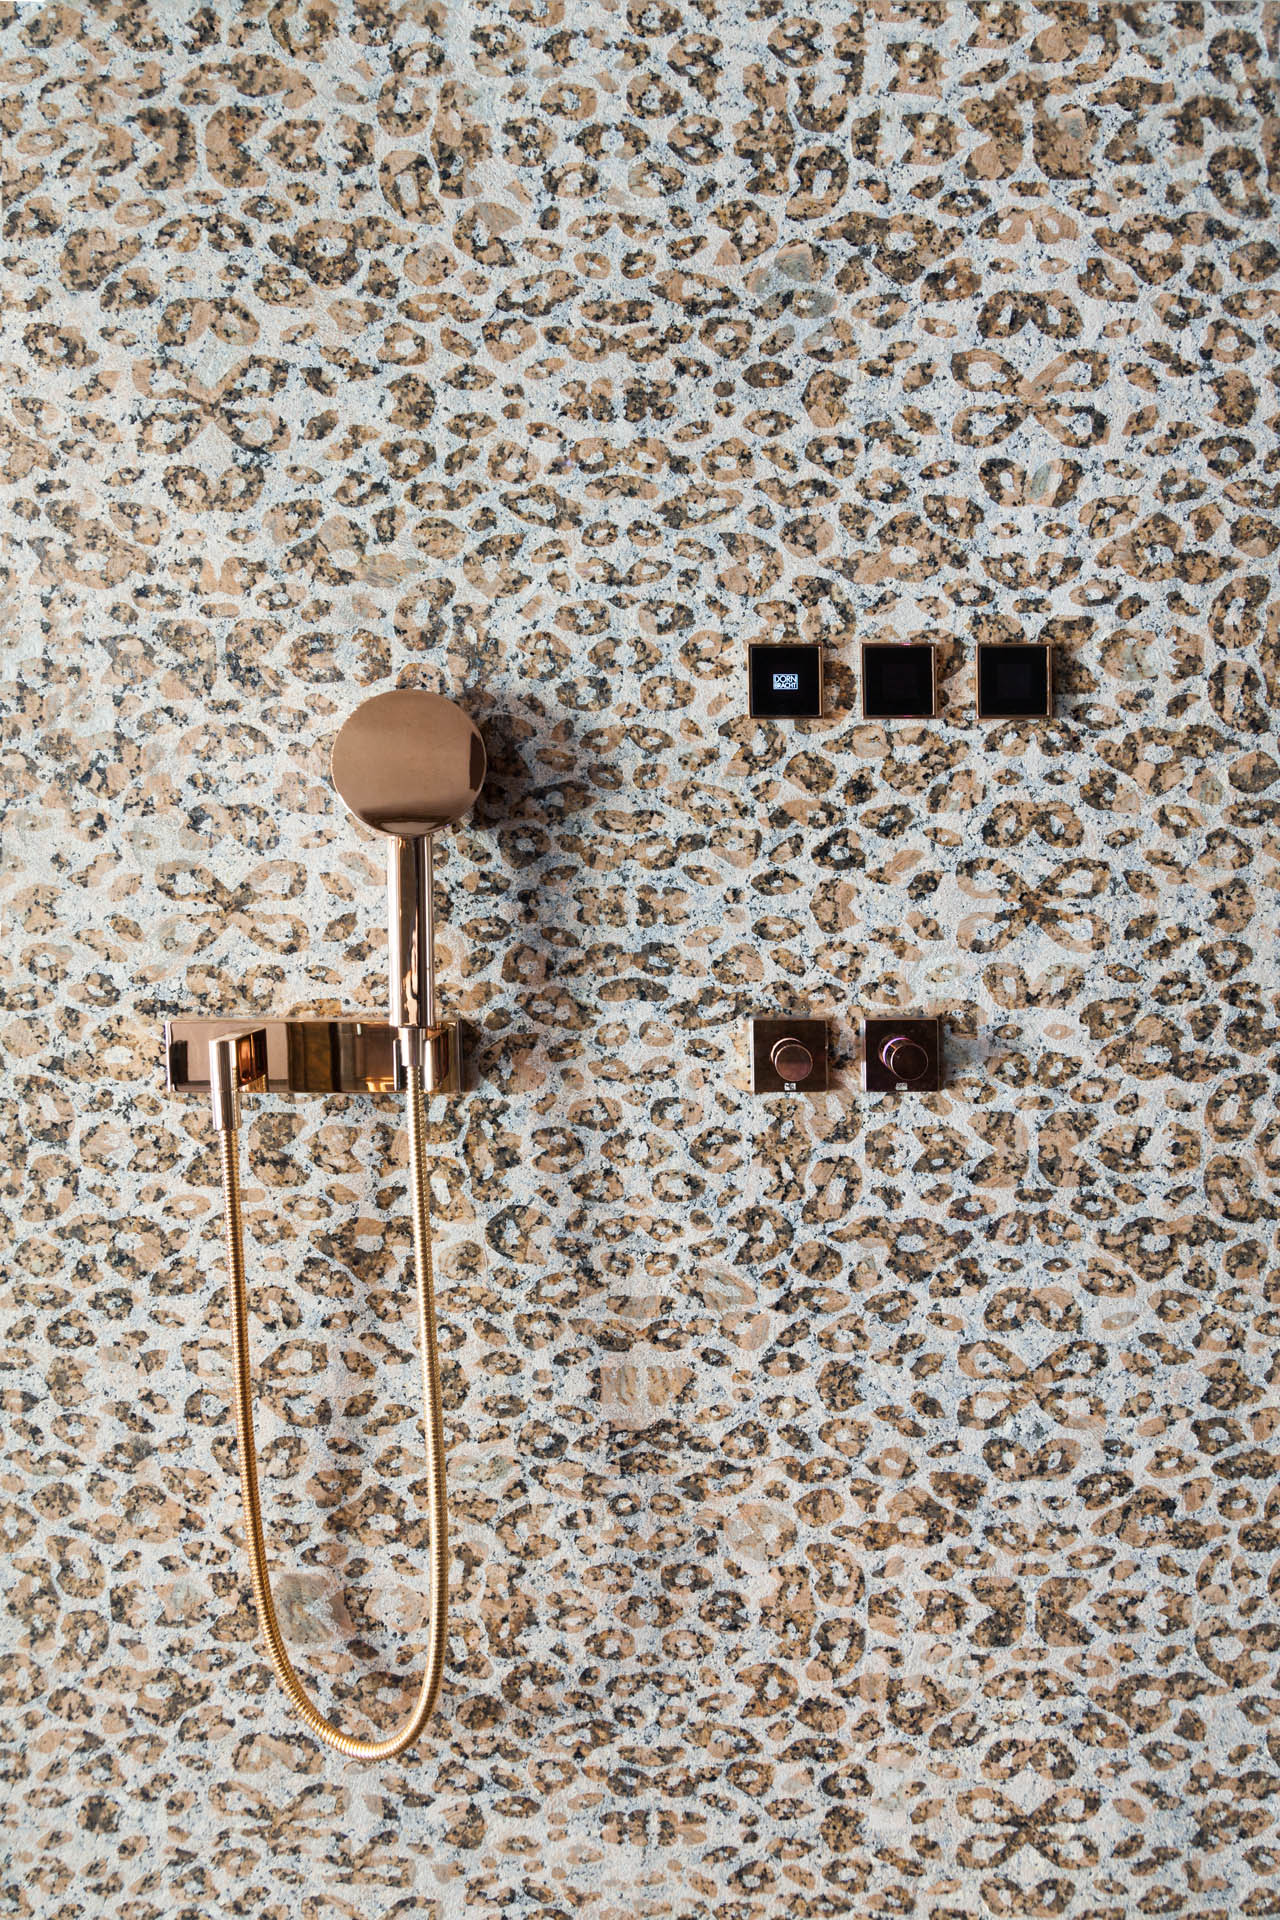 marmor_radermacher_dornbracht_rose_gold_or_antolini_natural_collection_texture_natursteindusche_douche_granit_showerdesign_luxury